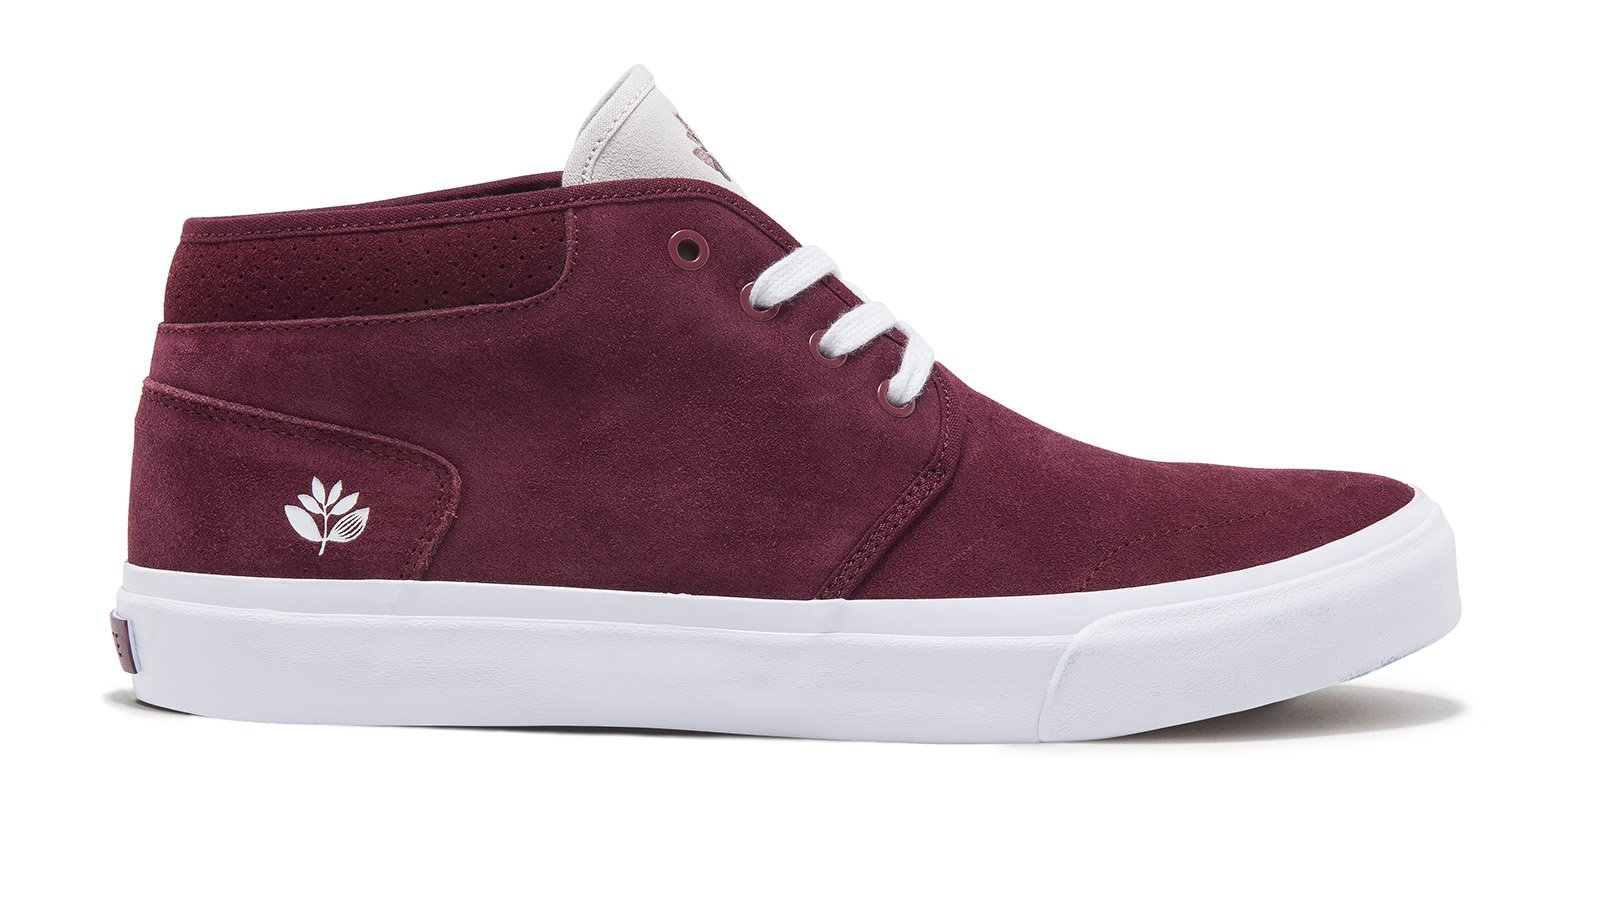 14126213b05 State Footwear Skate Shoes FW18 19 Preview - Boardsport SOURCE